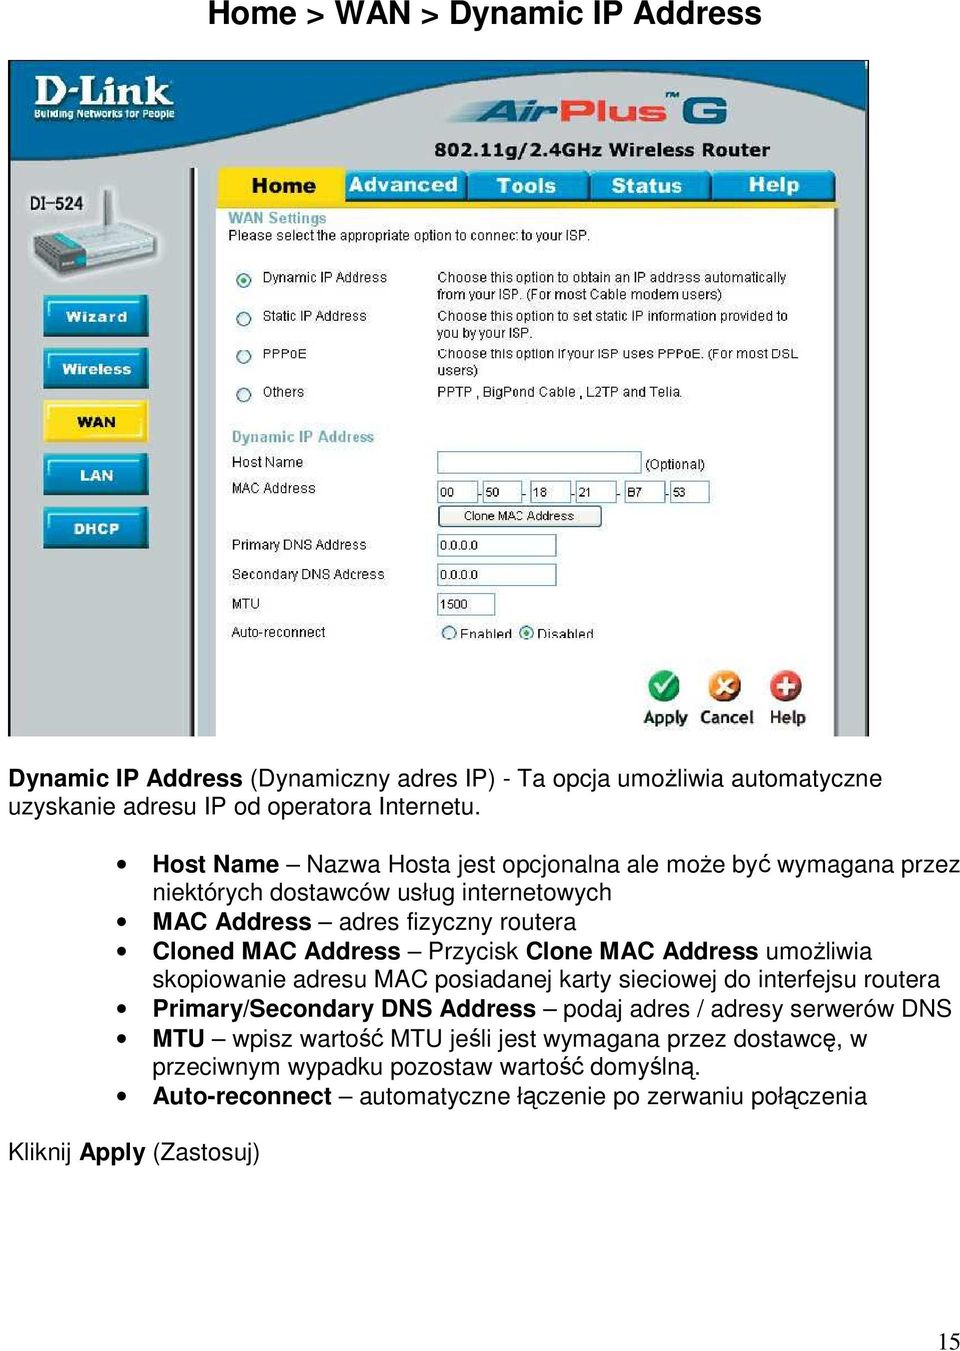 Clone MAC Address umoŝliwia skopiowanie adresu MAC posiadanej karty sieciowej do interfejsu routera Primary/Secondary DNS Address podaj adres / adresy serwerów DNS MTU